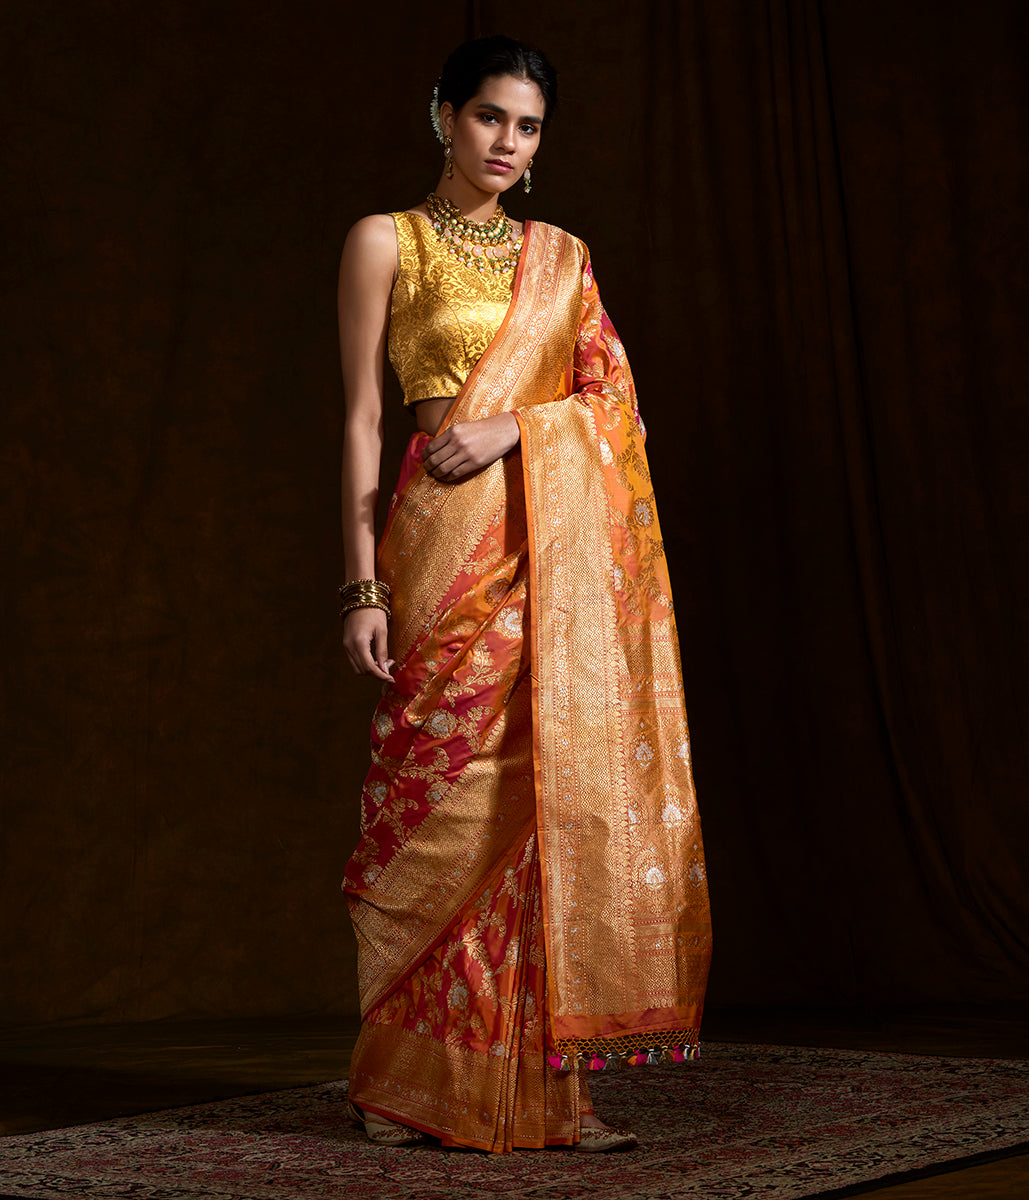 Handwoven kadhwa banarasi jangla in a Orange and pink dual tone with sona rupa zari